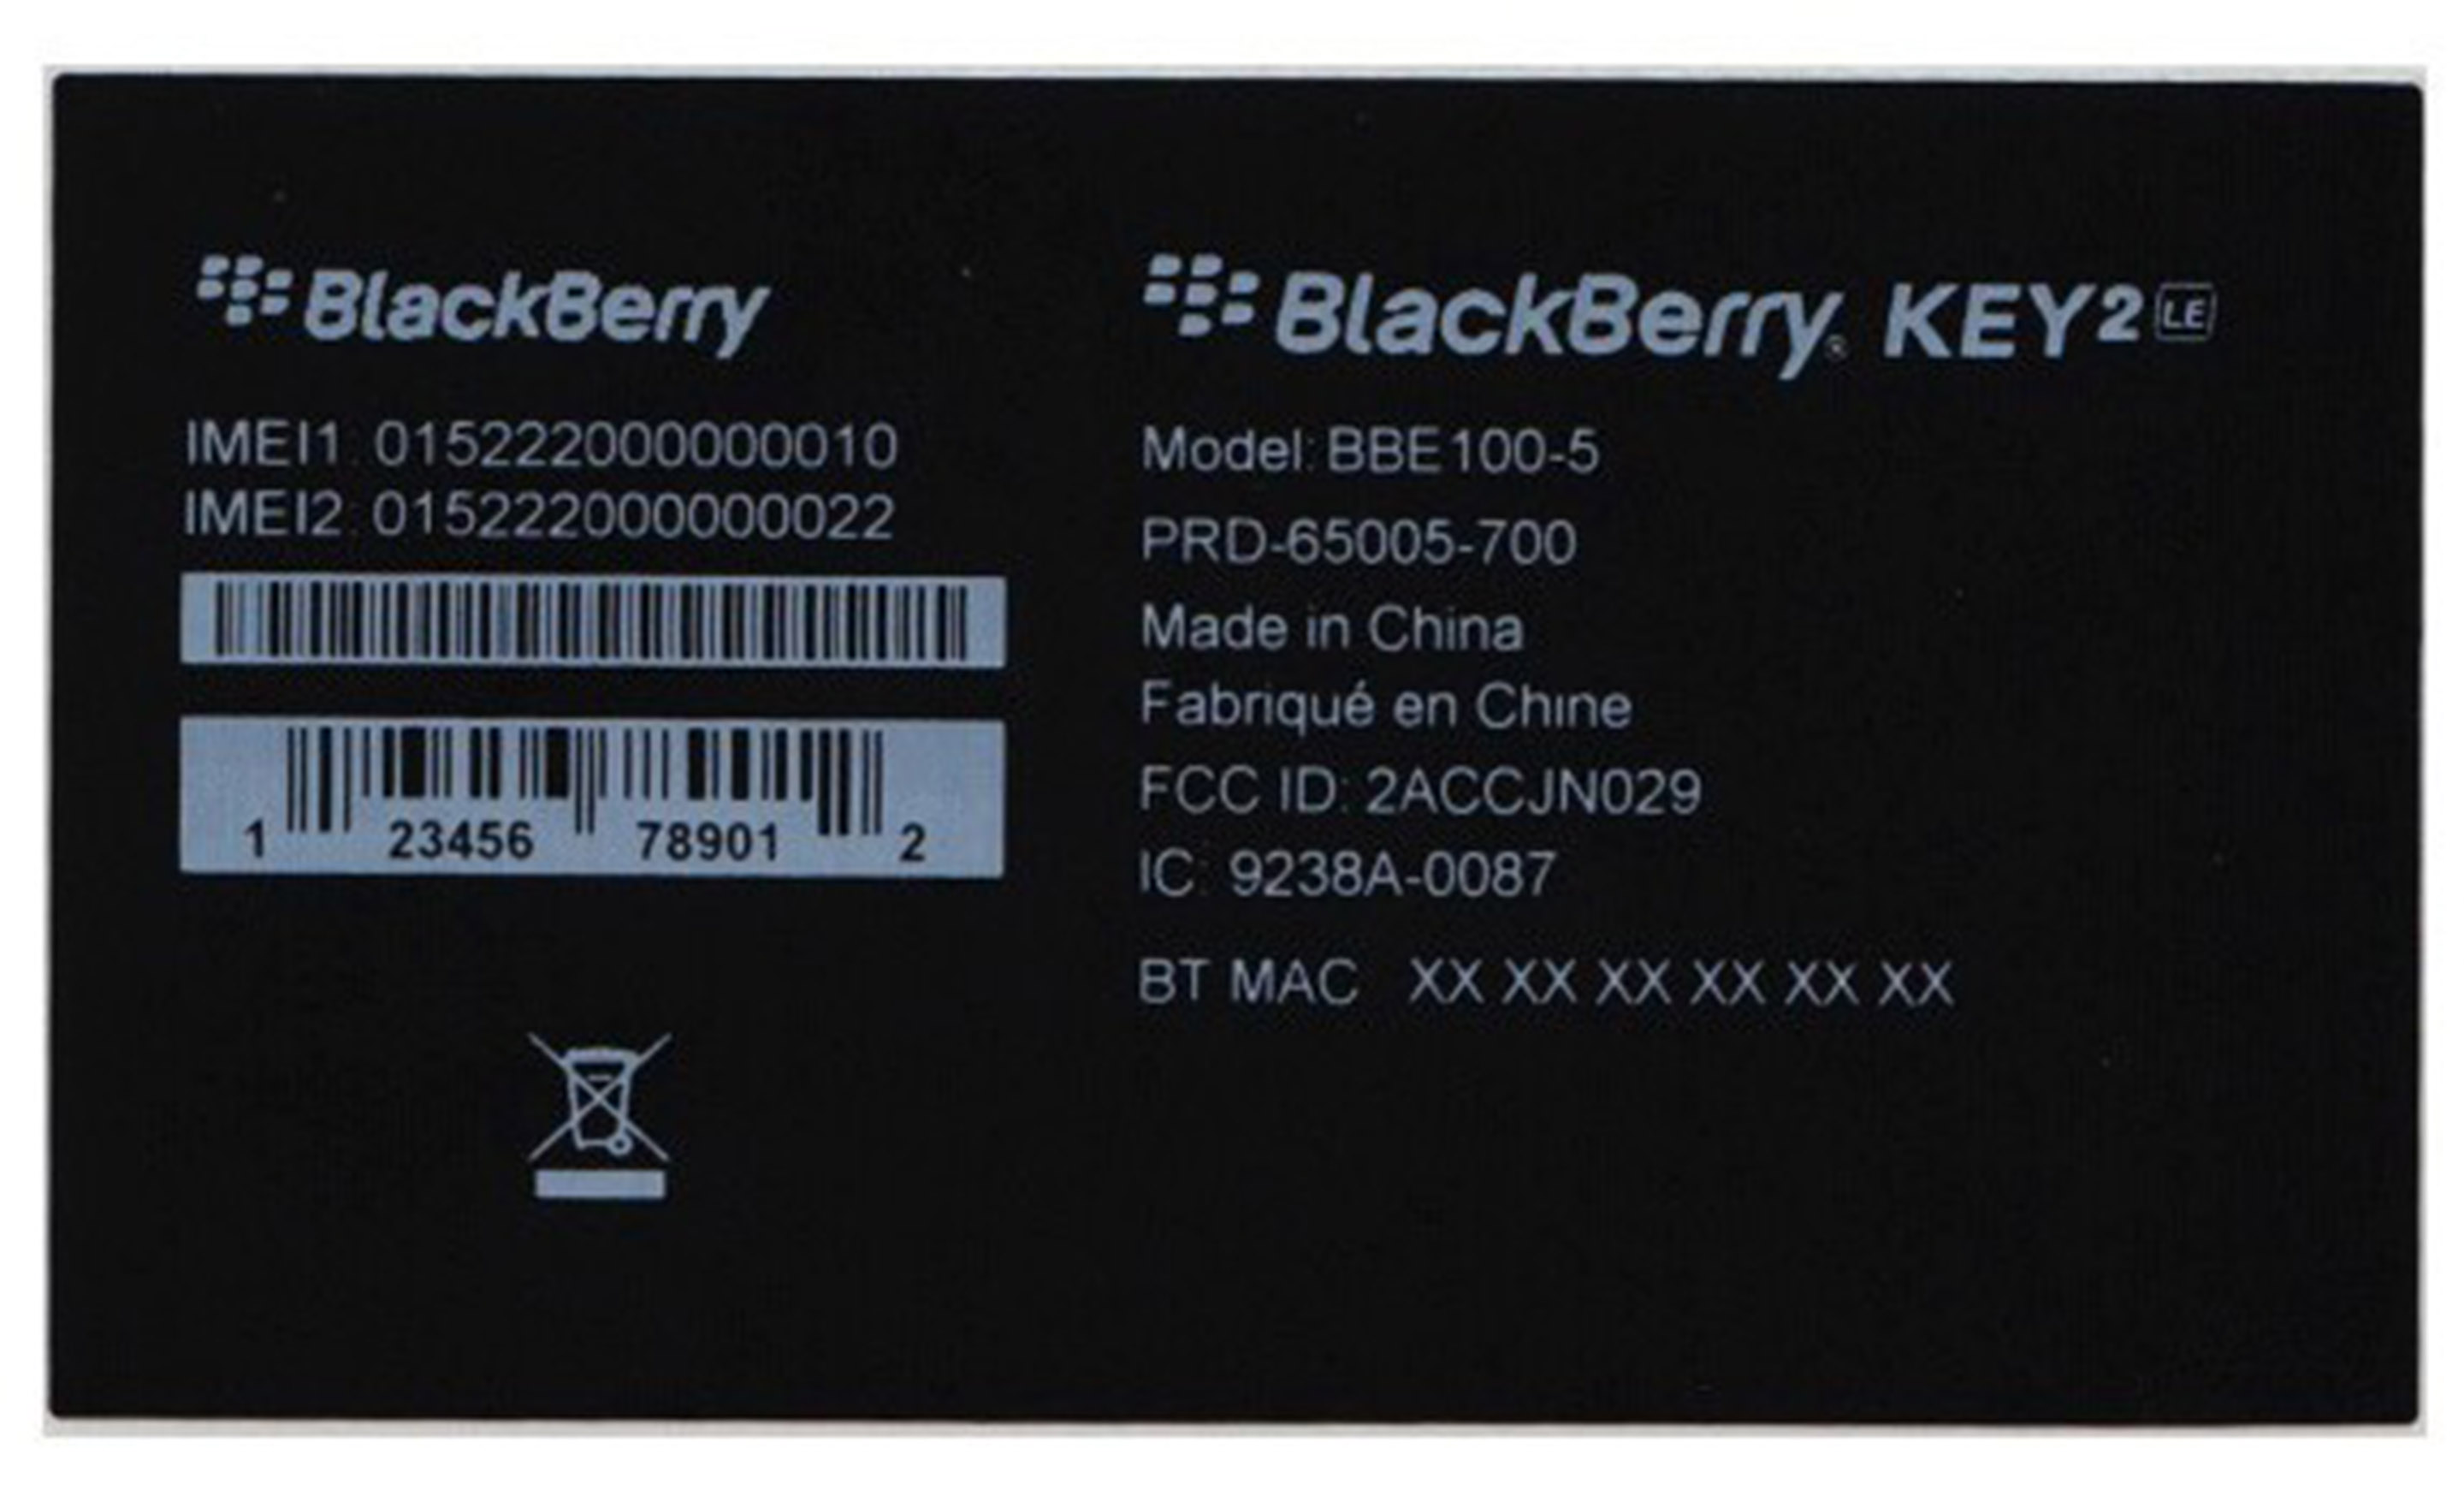 BlackBerry KEY2 LE tag